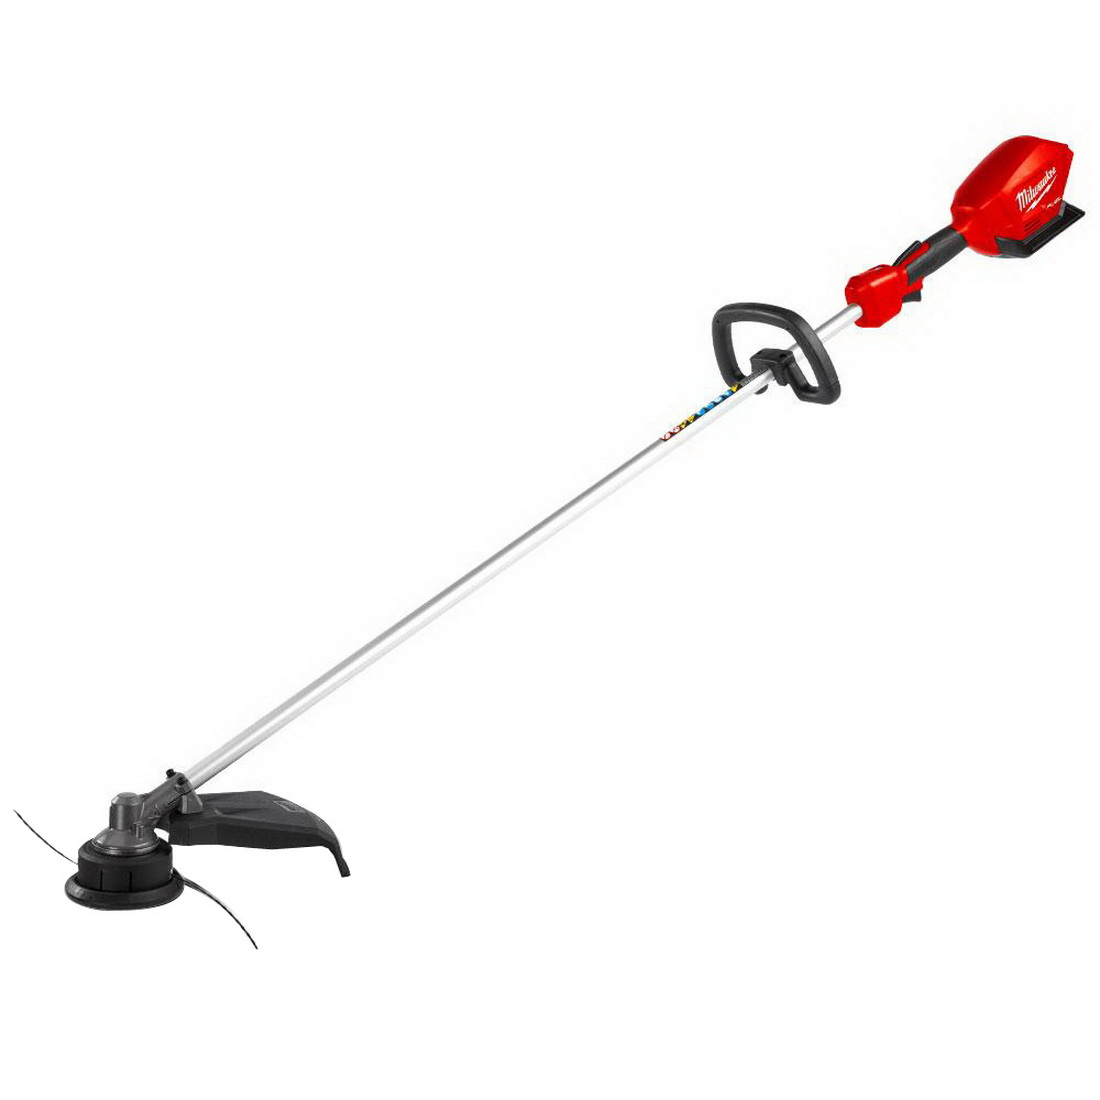 M18 FUEL Cordless Line Trimmer (Tool Only)